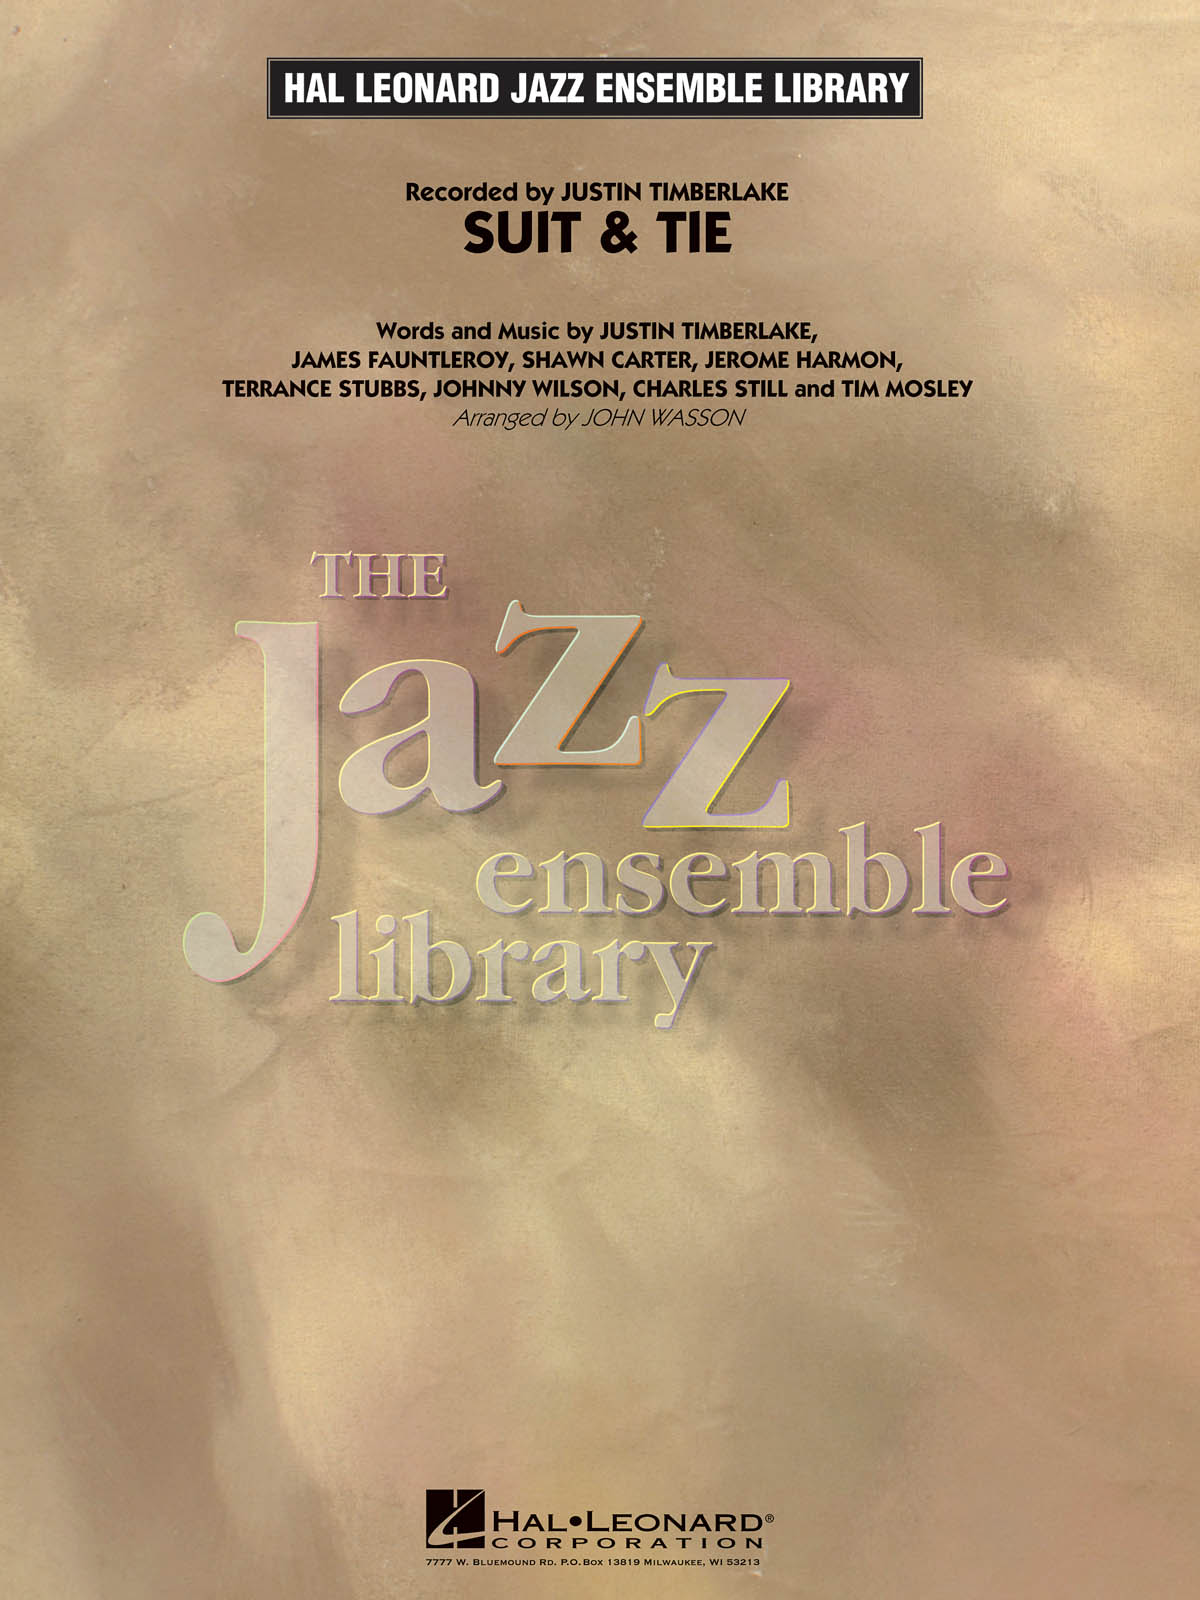 Suit & Tie: The Jazz Ensemble Library